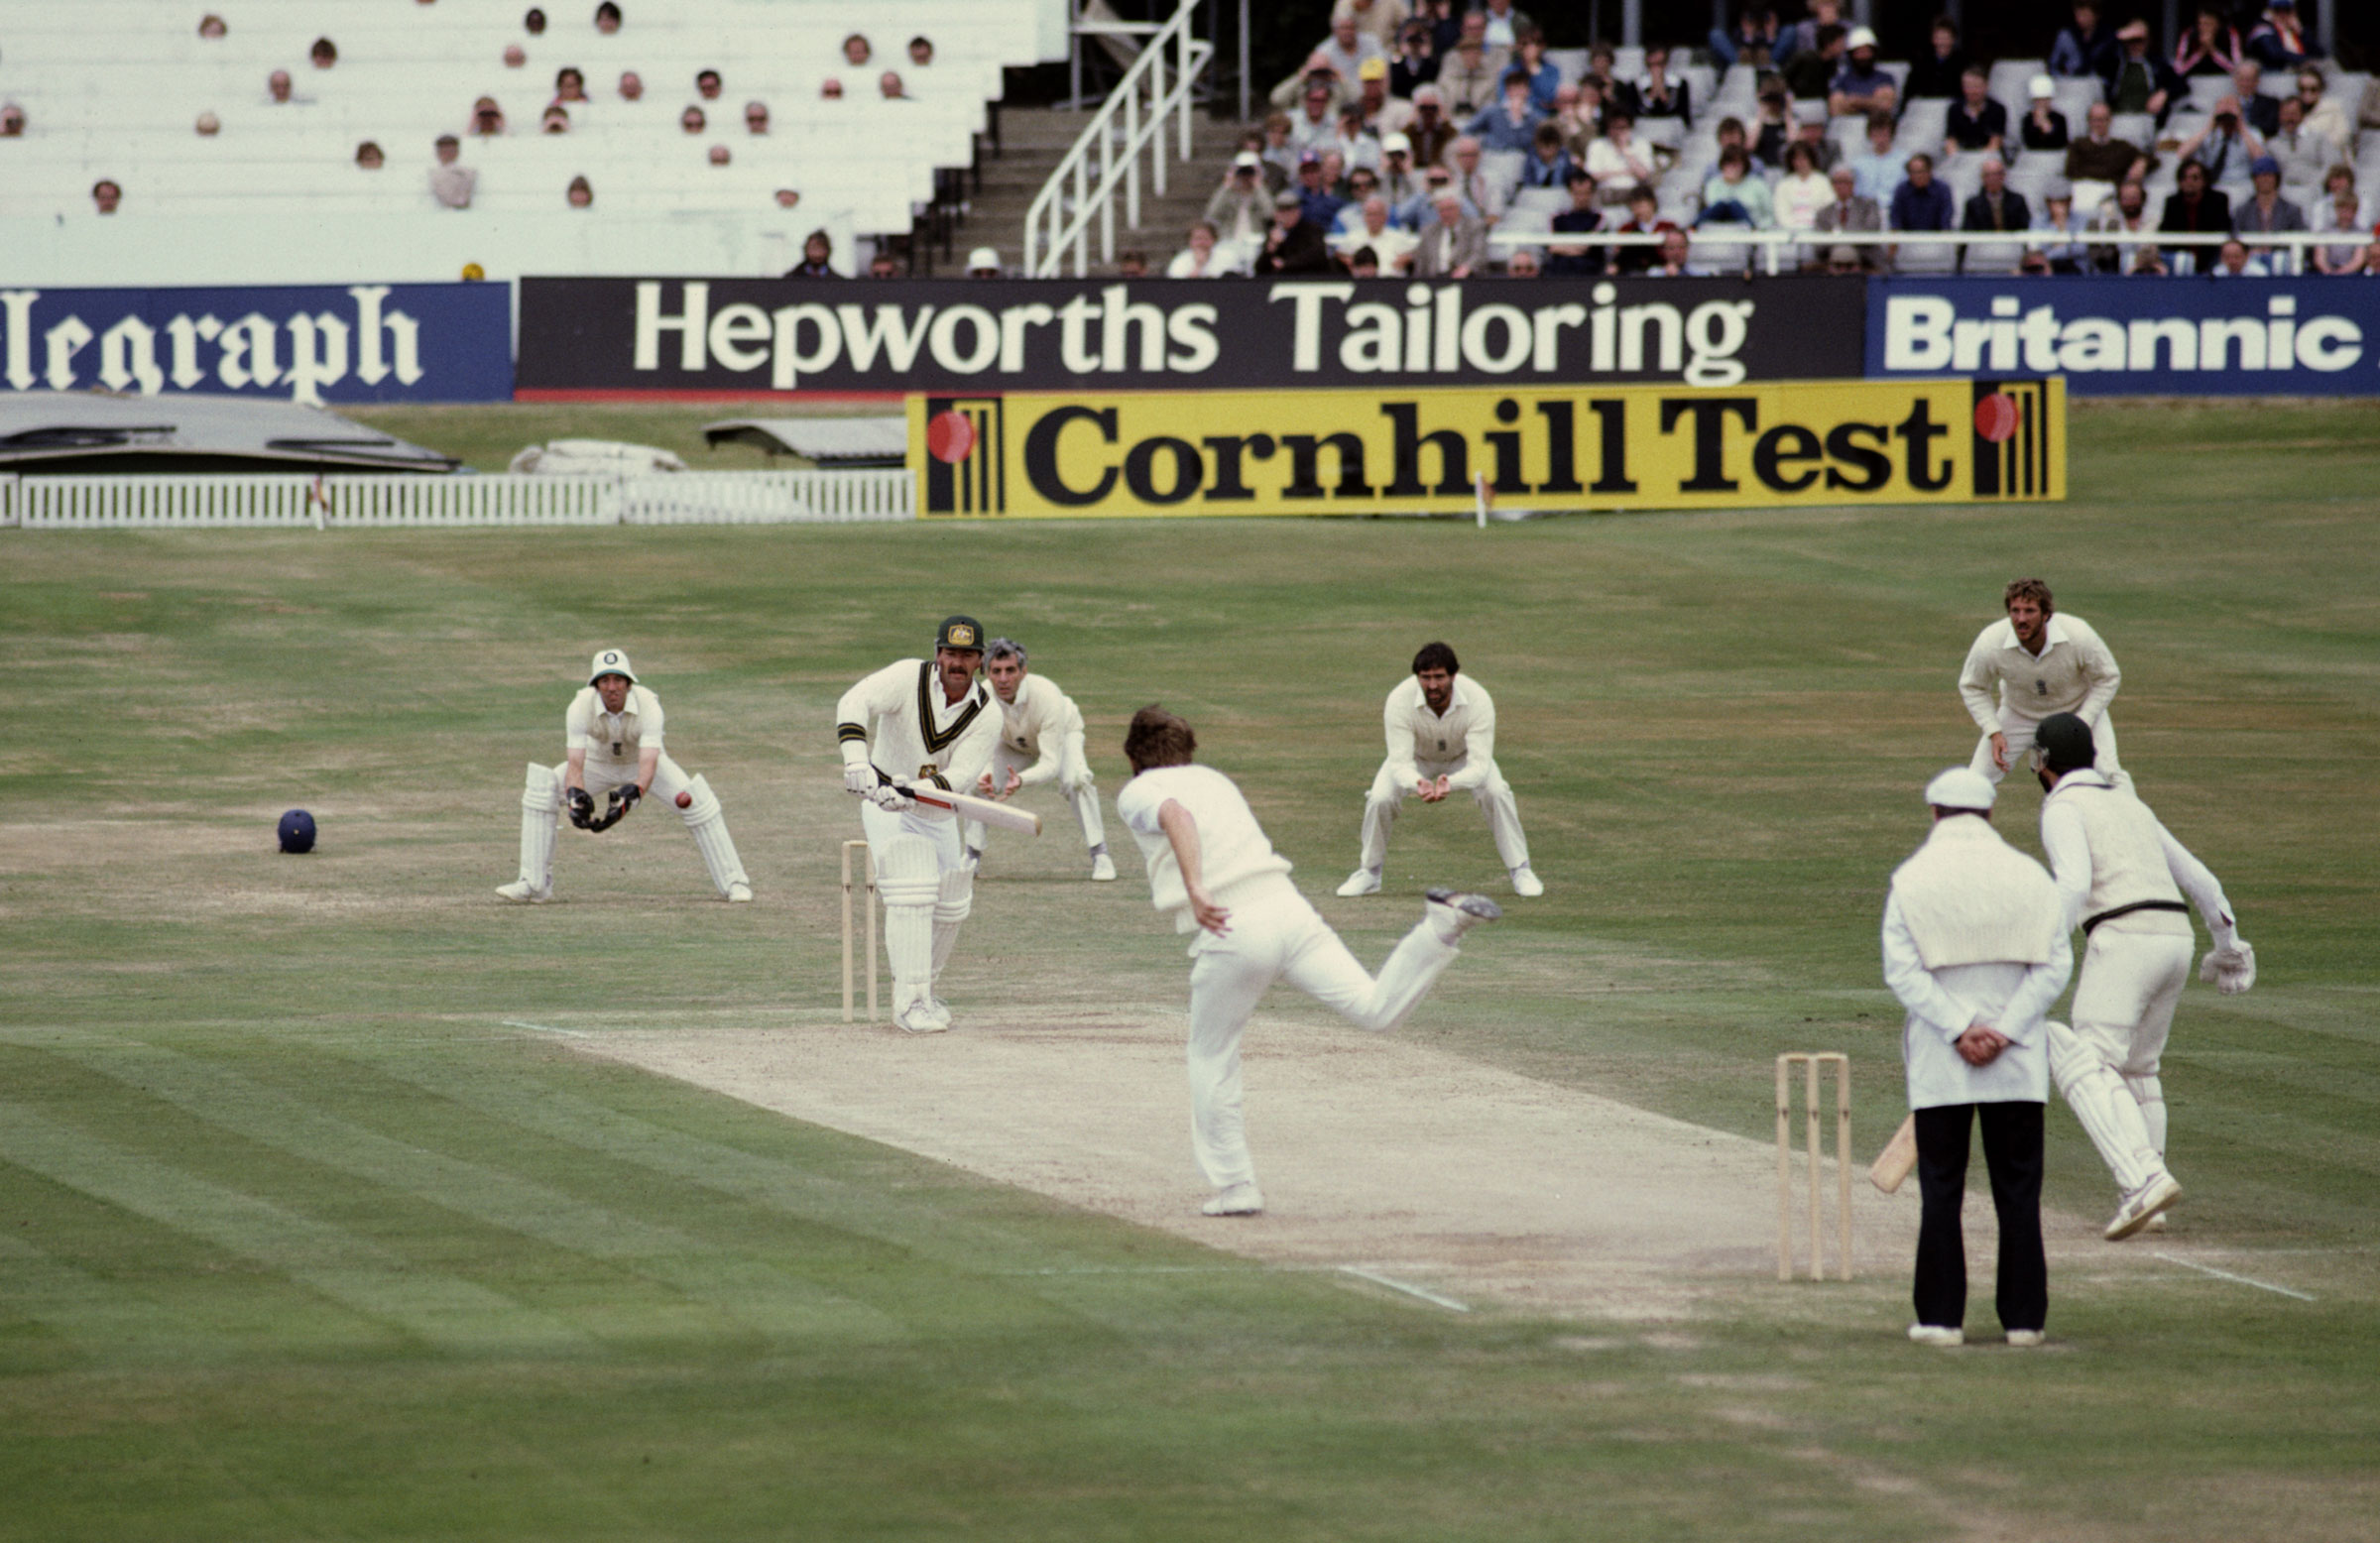 Rod Marsh at the crease for Australia in 1981 // Getty Images